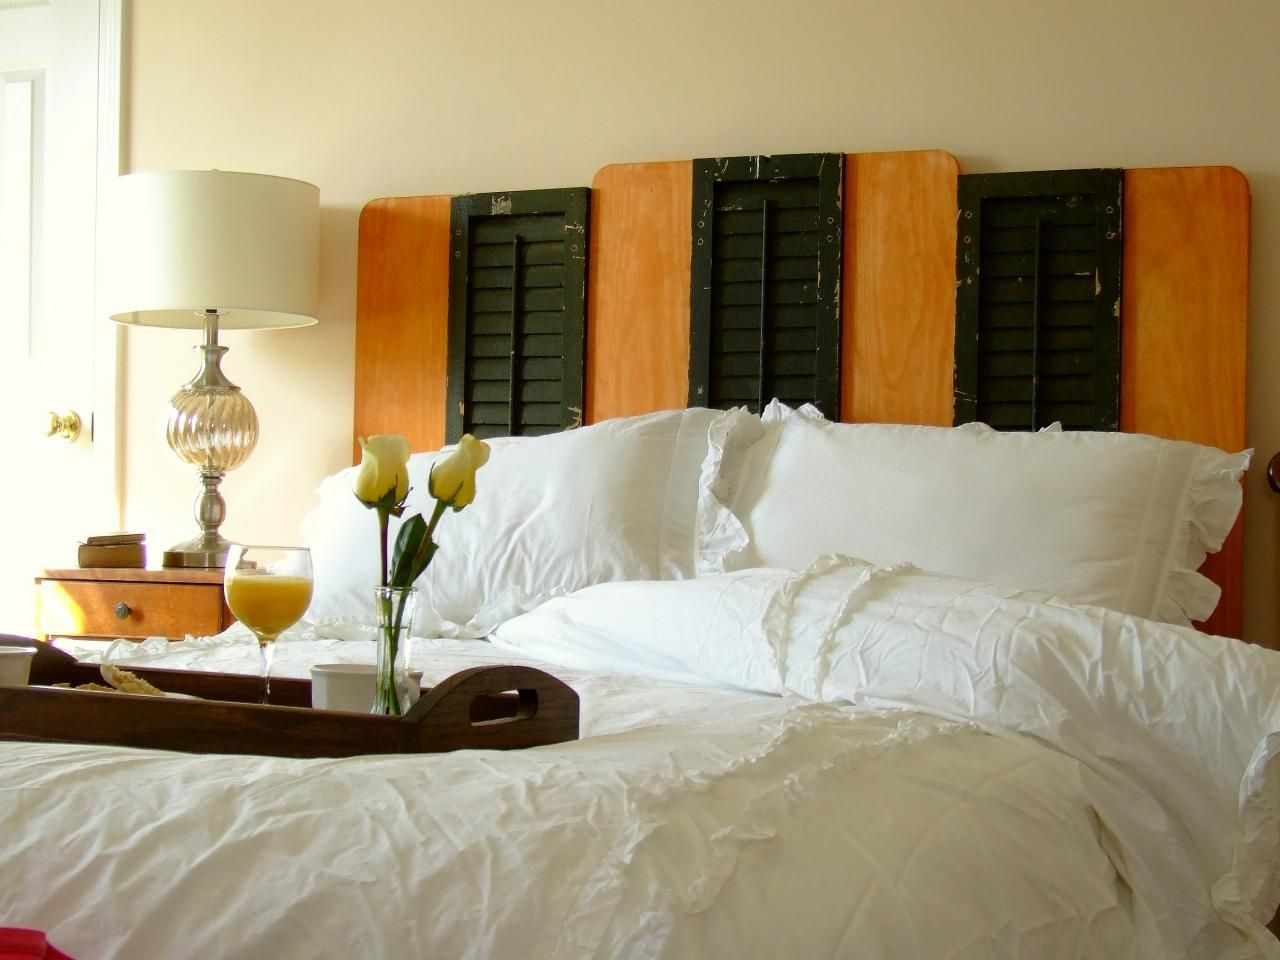 Old window over bed  how to make a headboard from upcycled shutters  headboards